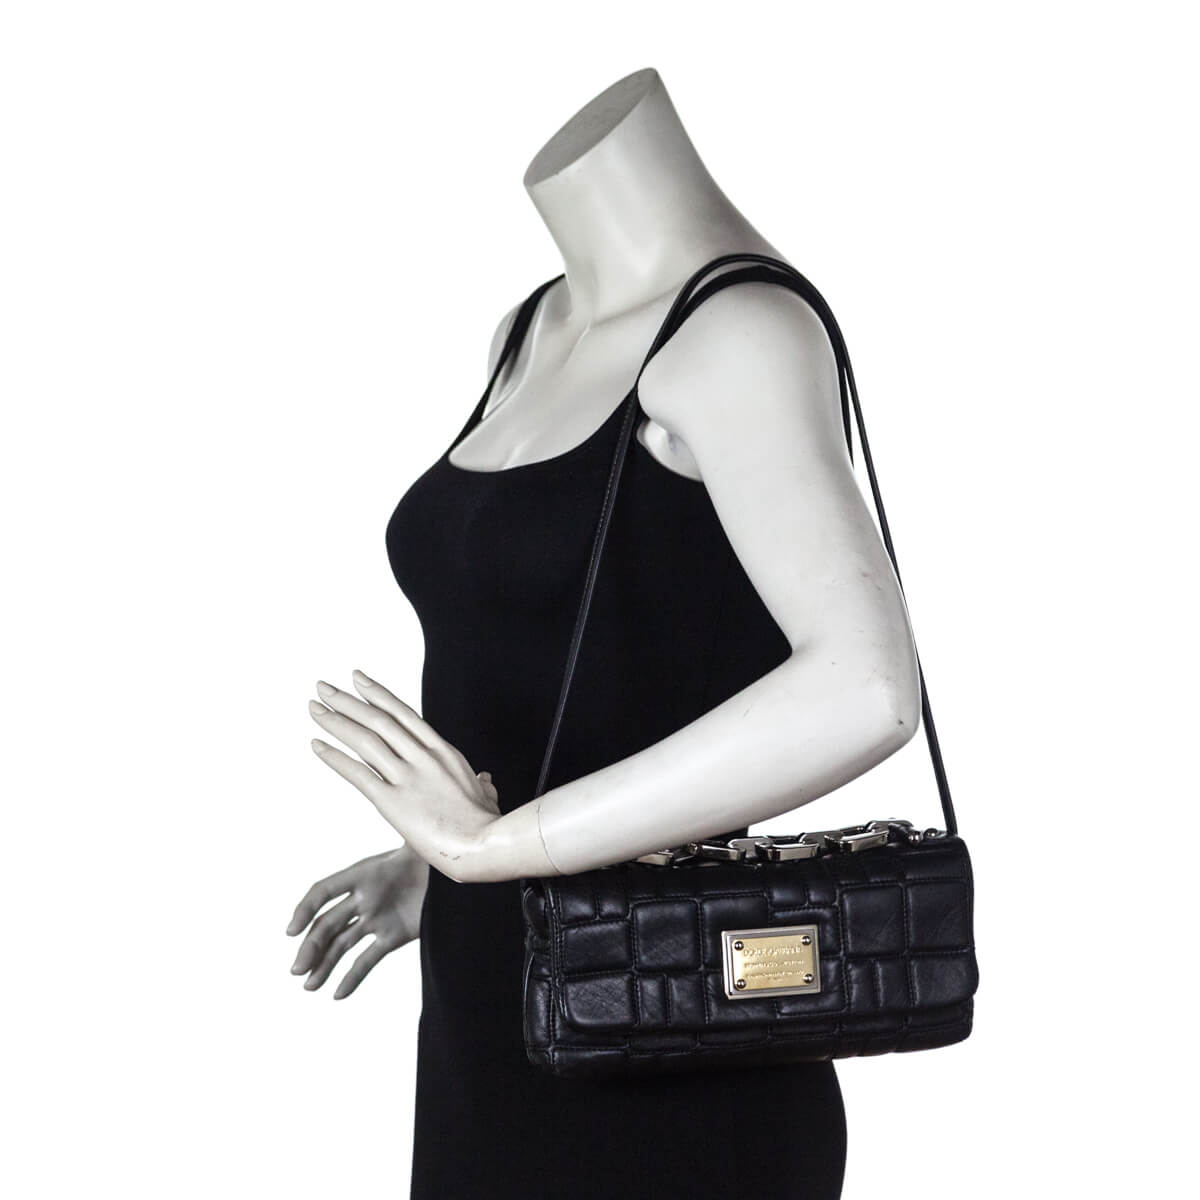 09c2a6501f ... Dolce   Gabbana Black Miss Deco Shoulder Bag - LOVE that BAG - Preowned  Authentic Designer